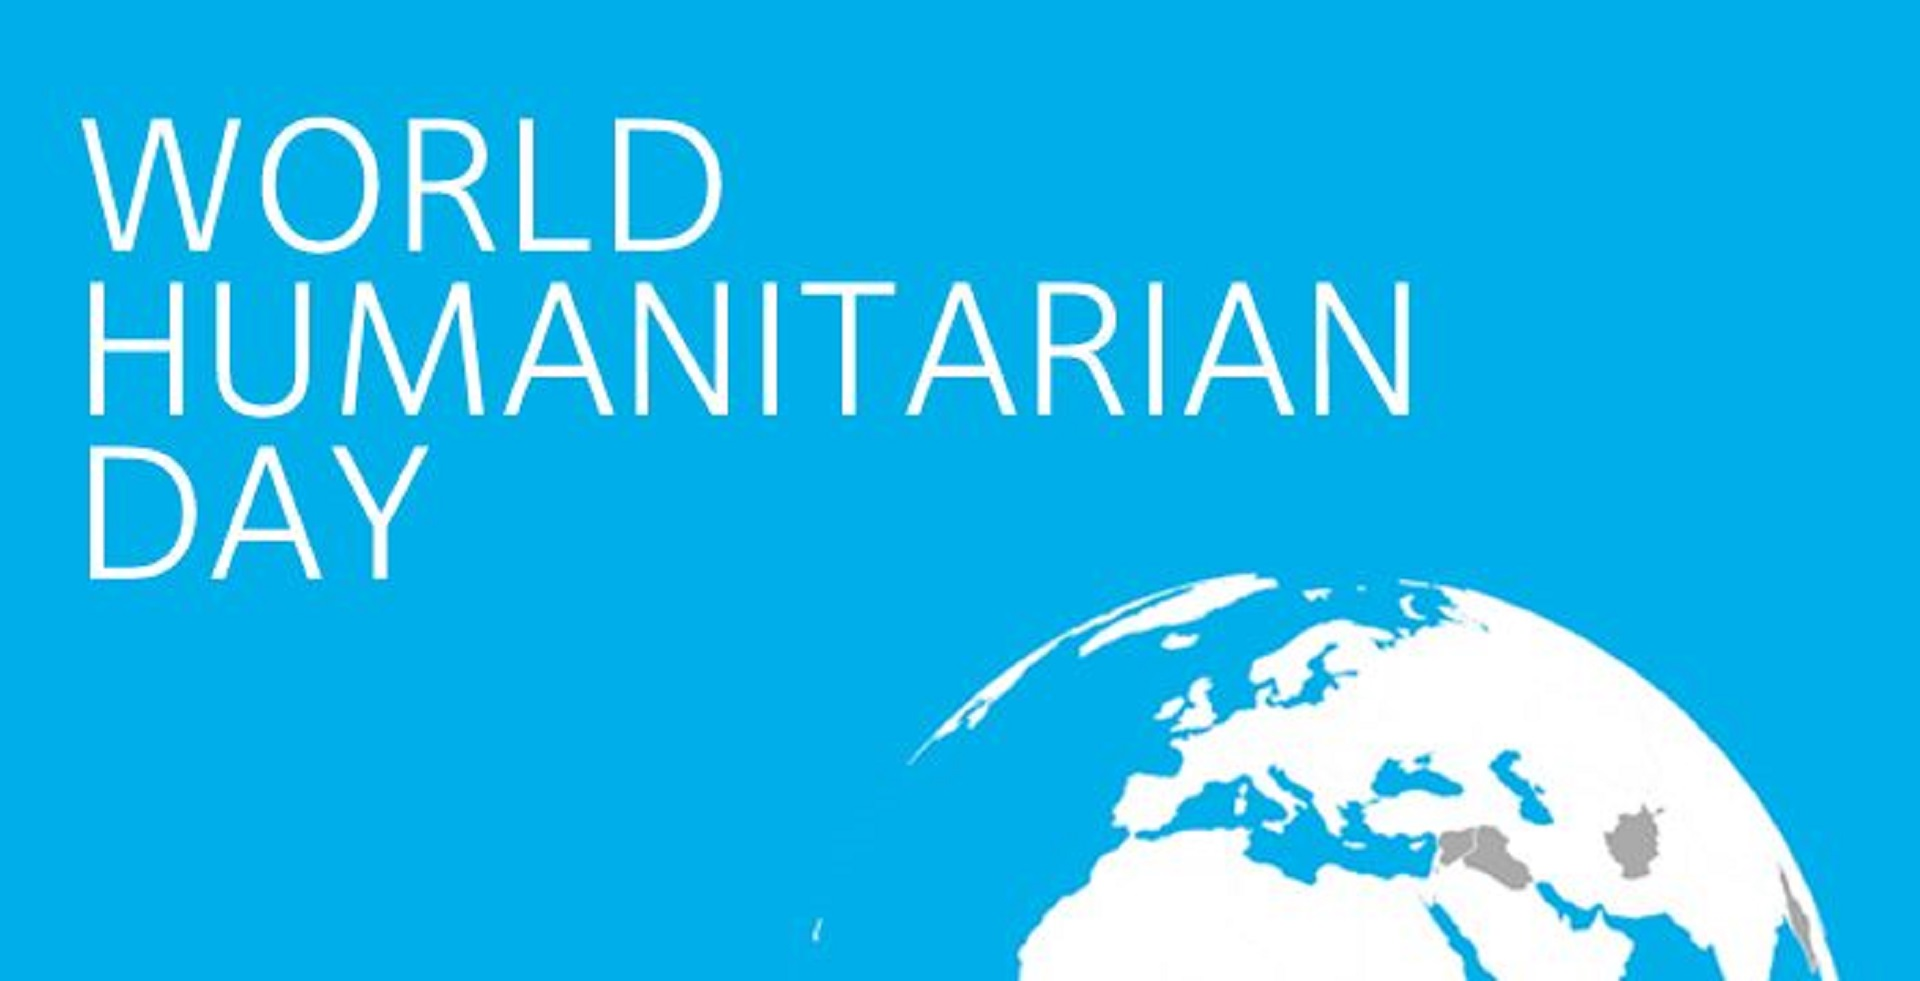 outline of globe in the bottom right corner against a blue background with the words World Humanitarian Day written in the upper left-hand corner.